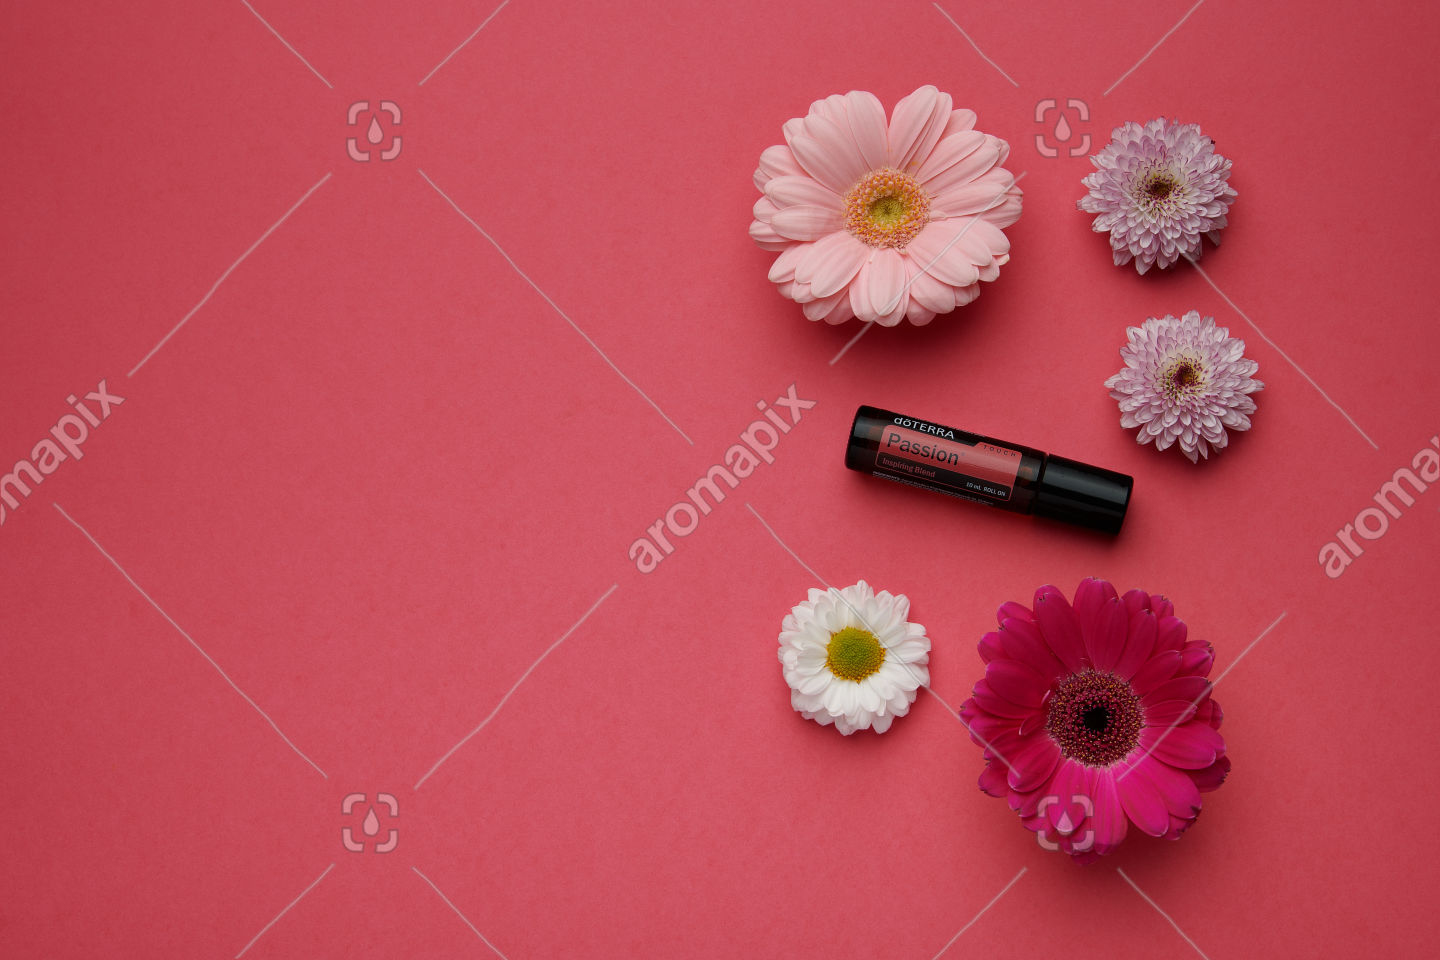 doTERRA Passion Touch with flowers on pink